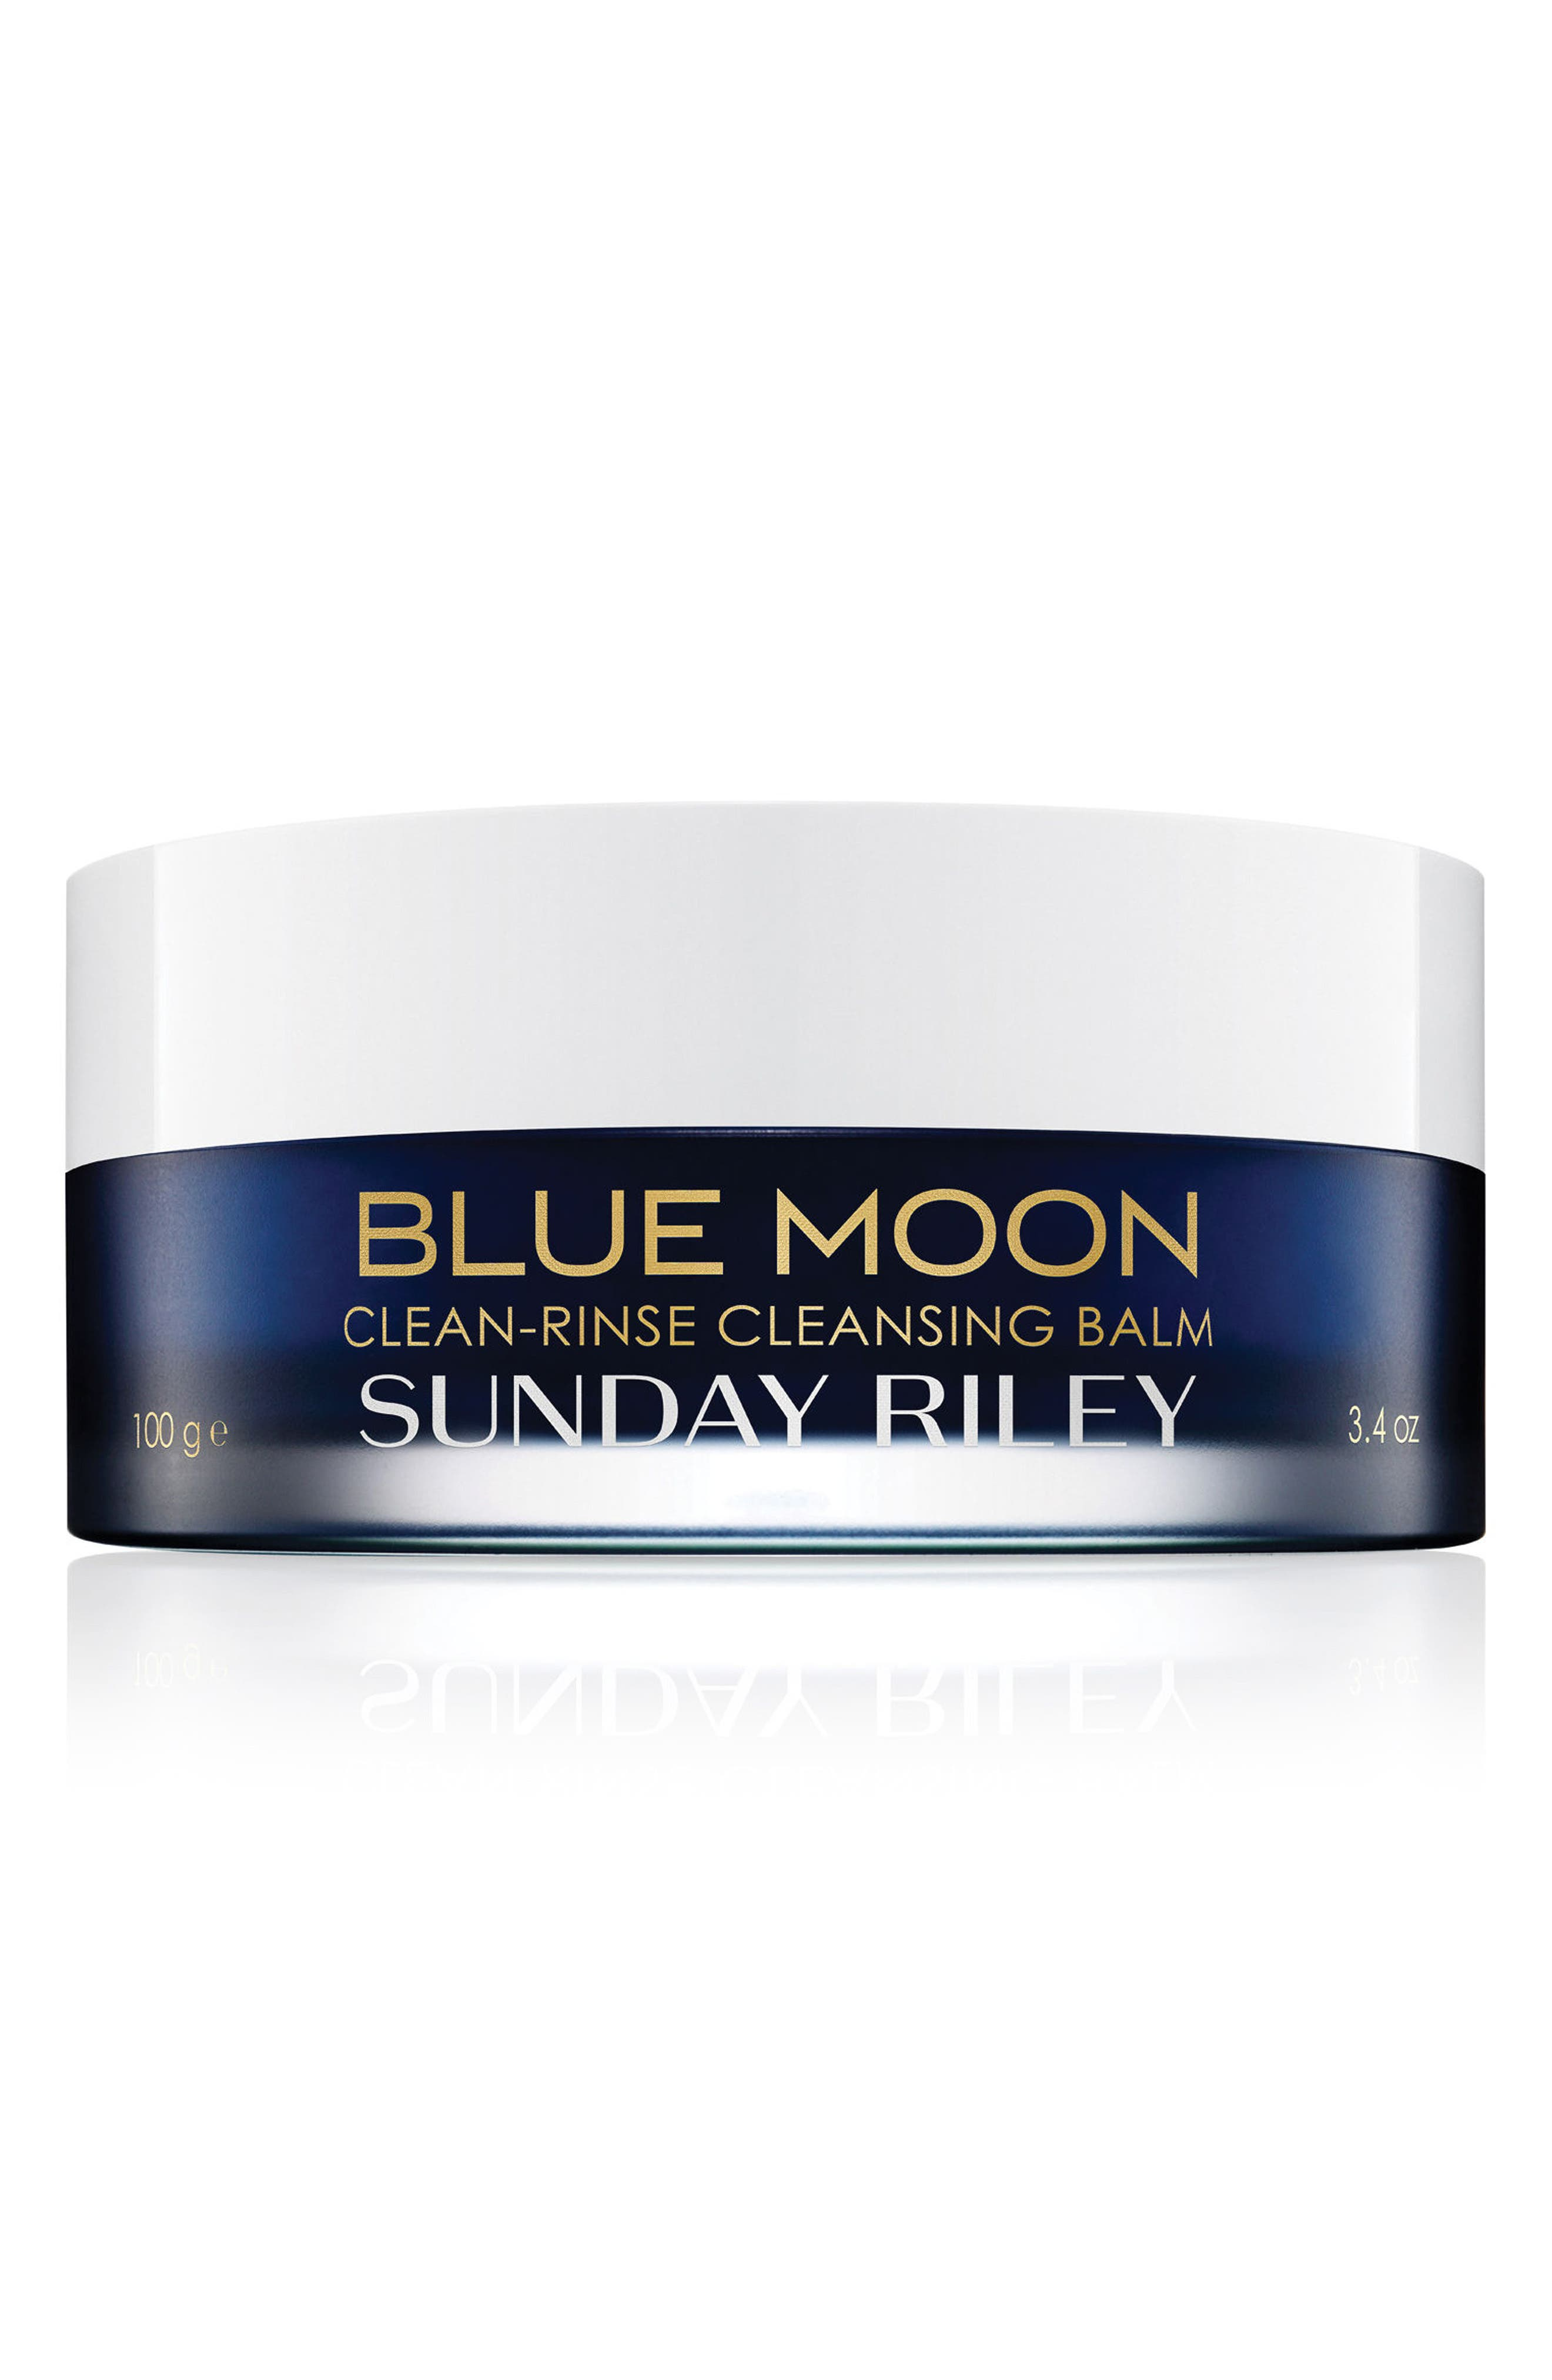 Alternate Image 1 Selected - SPACE.NK.apothecary Sunday Riley Blue Moon Tranquility Cleansing Balm